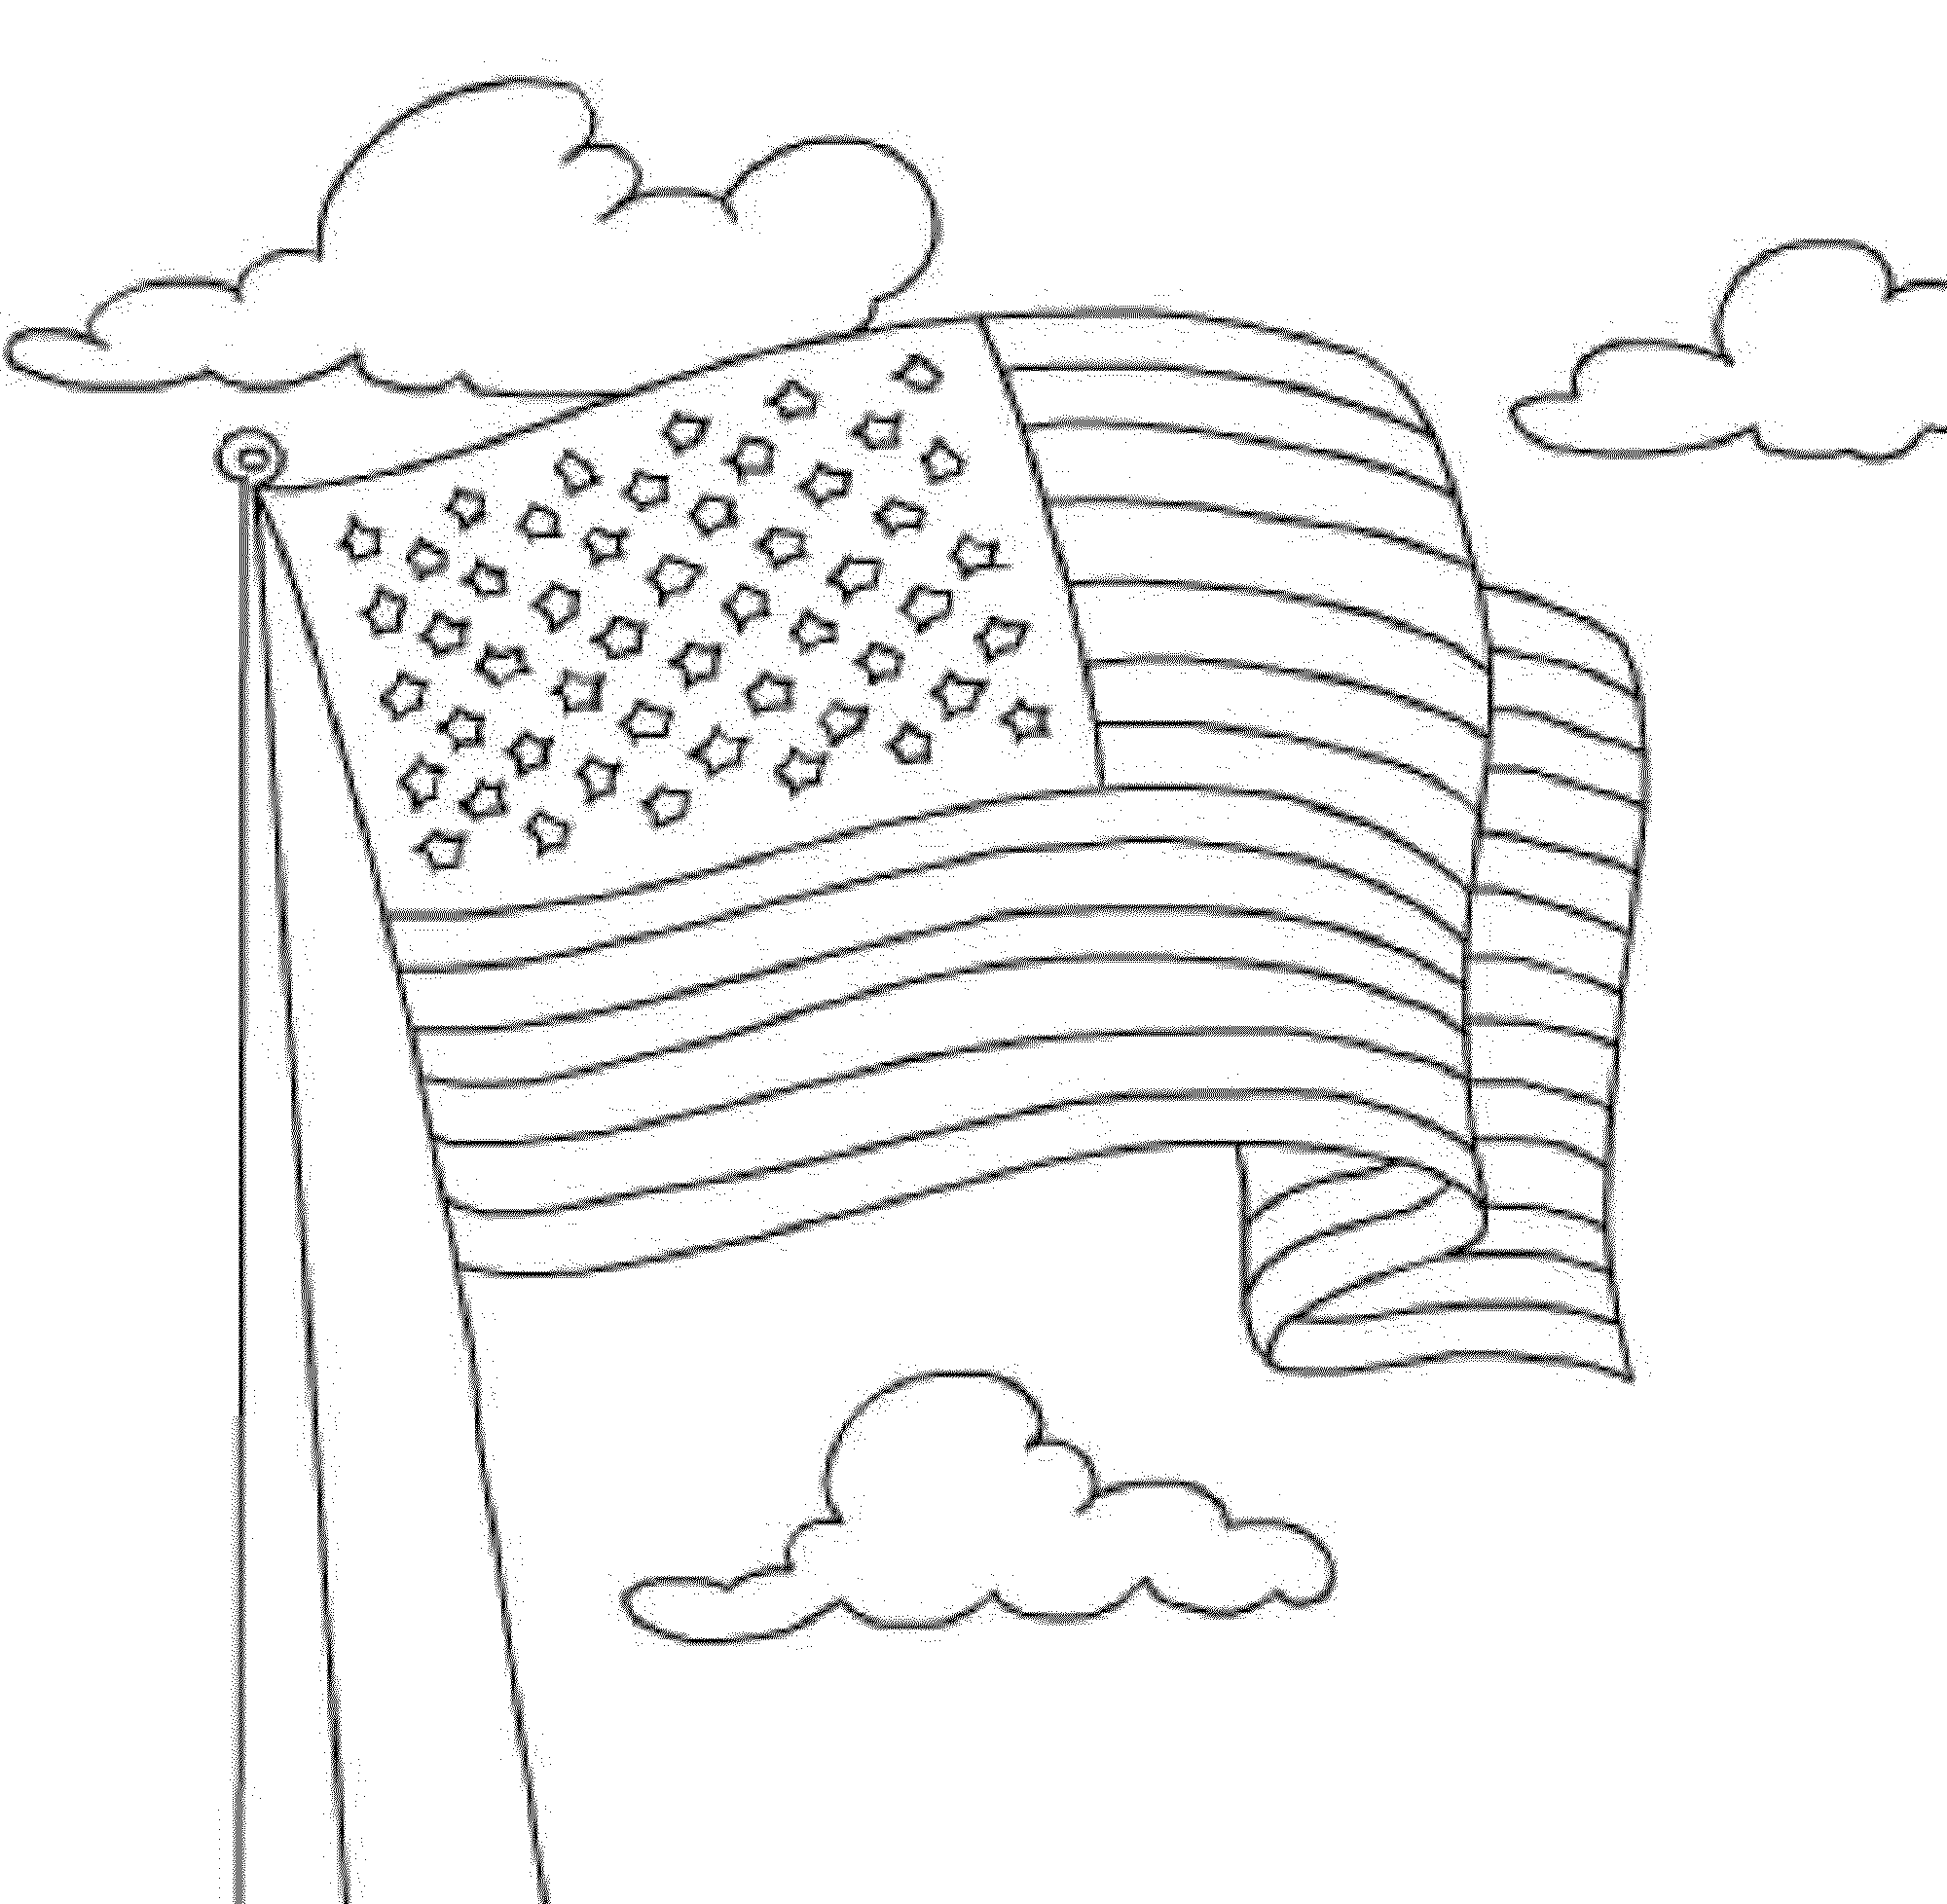 us flag coloring page american flag coloring page for the love of the country page us coloring flag